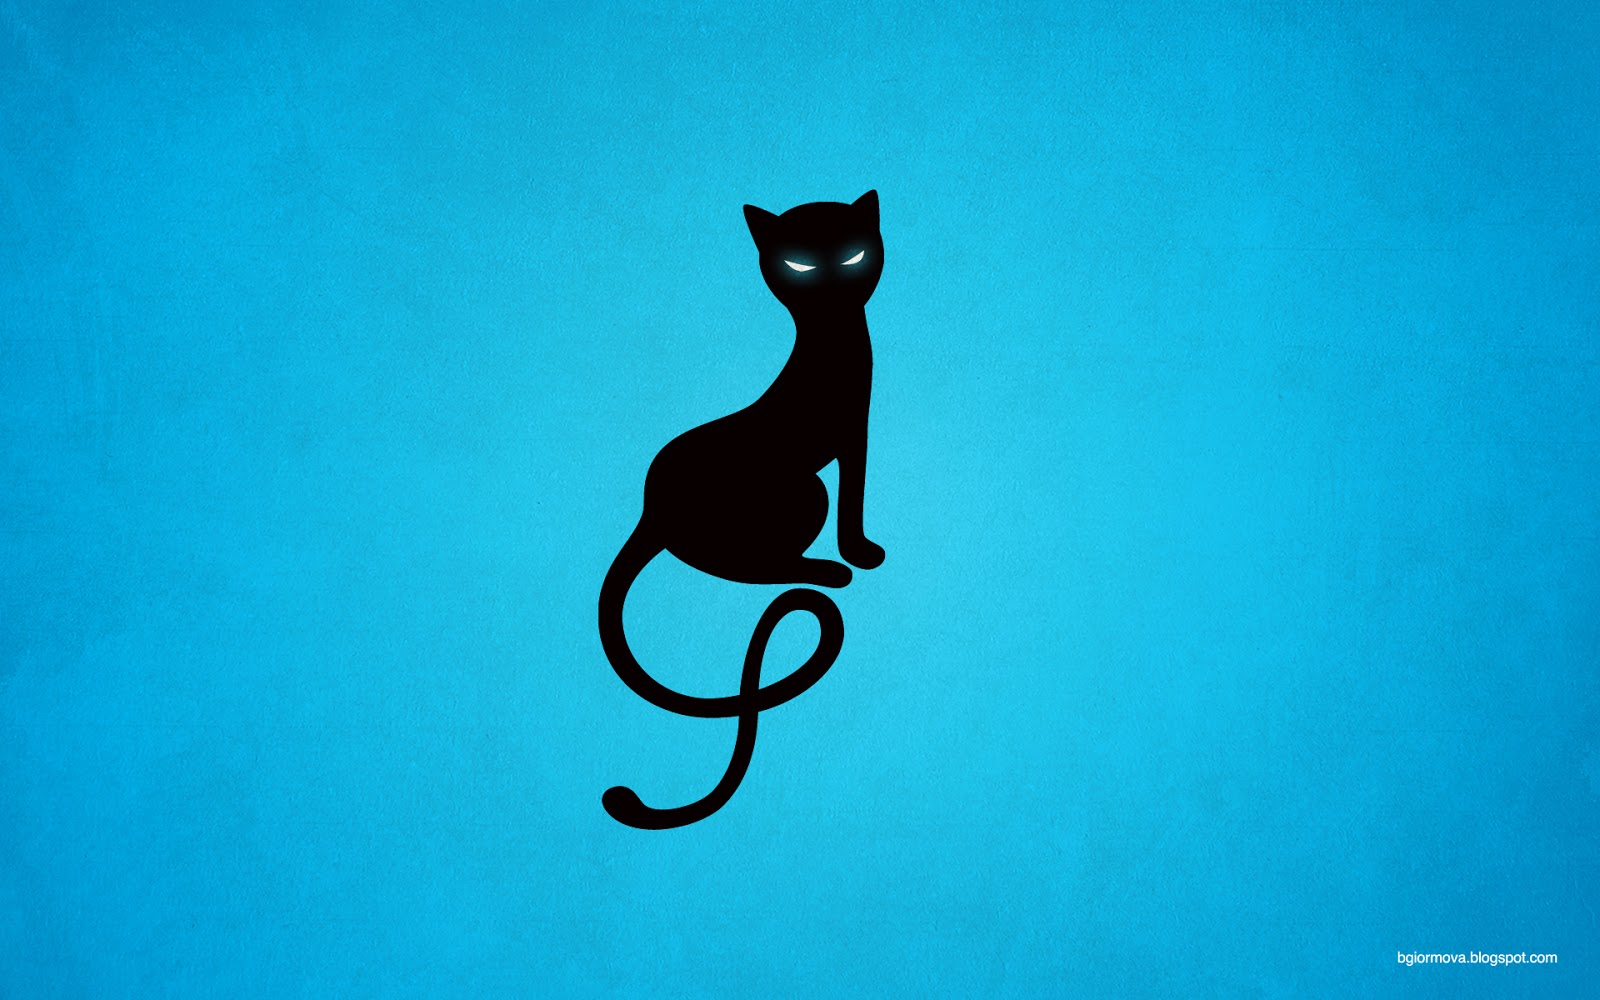 Gracious evil black cat desktop wallpaper in blue